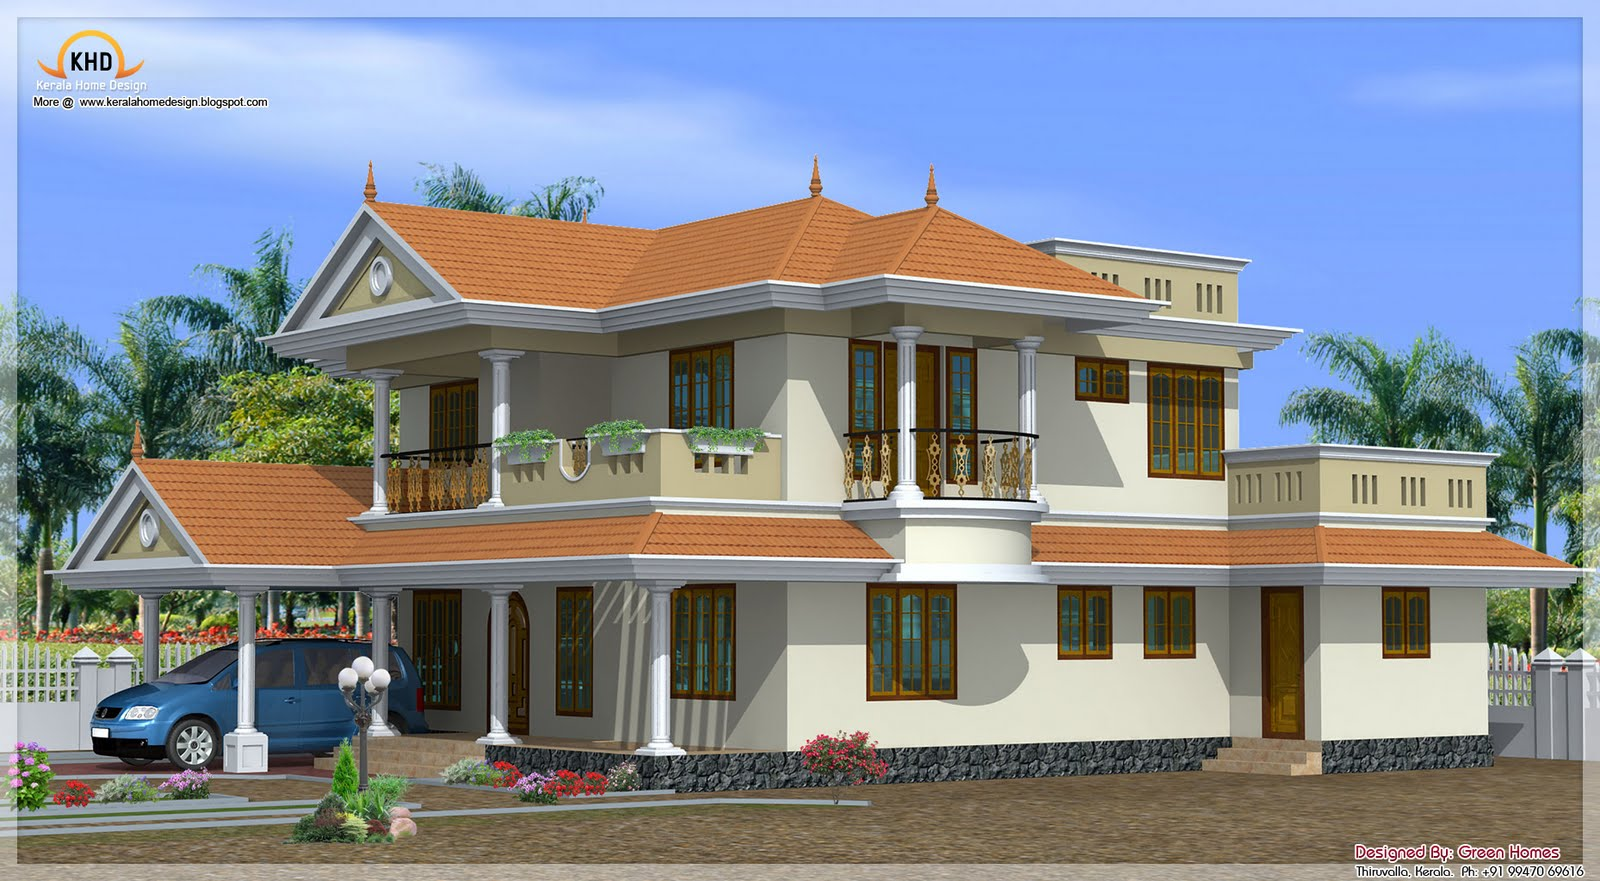 Indian home design indian home decor for Indian home exterior designs